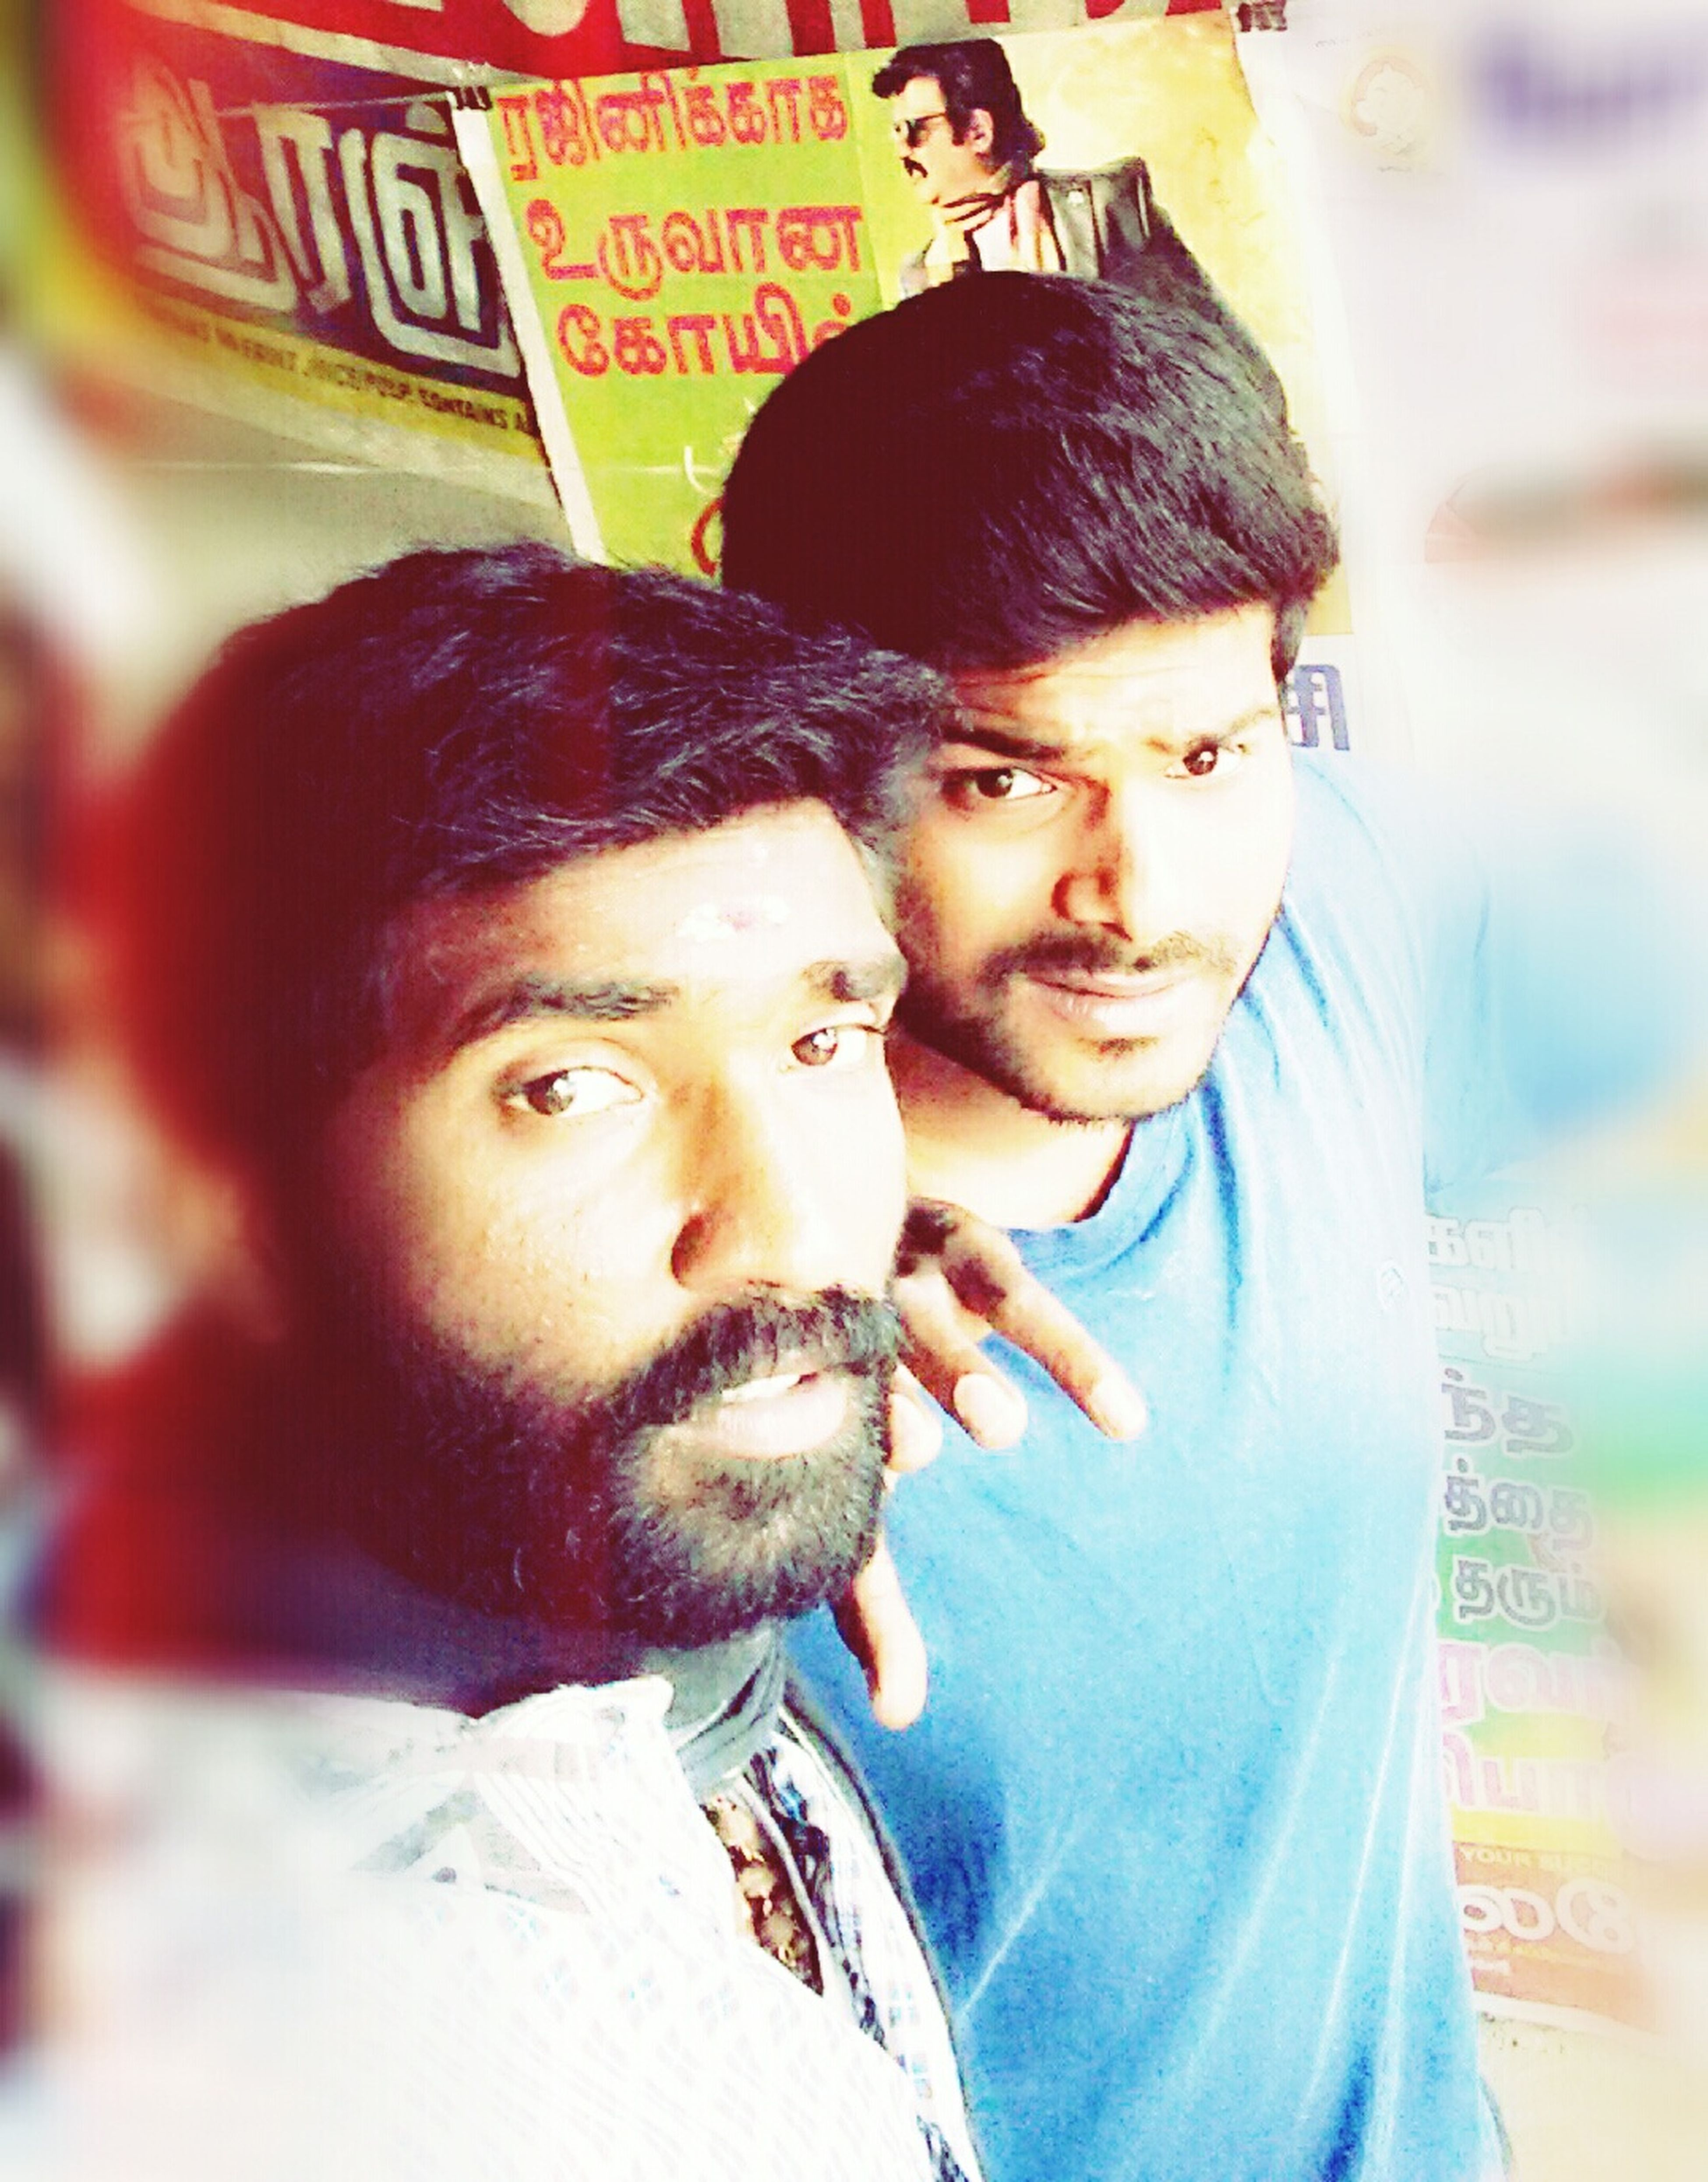 That's Me Me And My Bestfriend Open Edit Lovely Day Best Friendship ... Simple Moment Snapshot .. Indian Background >>> Superstar Rajaikanath